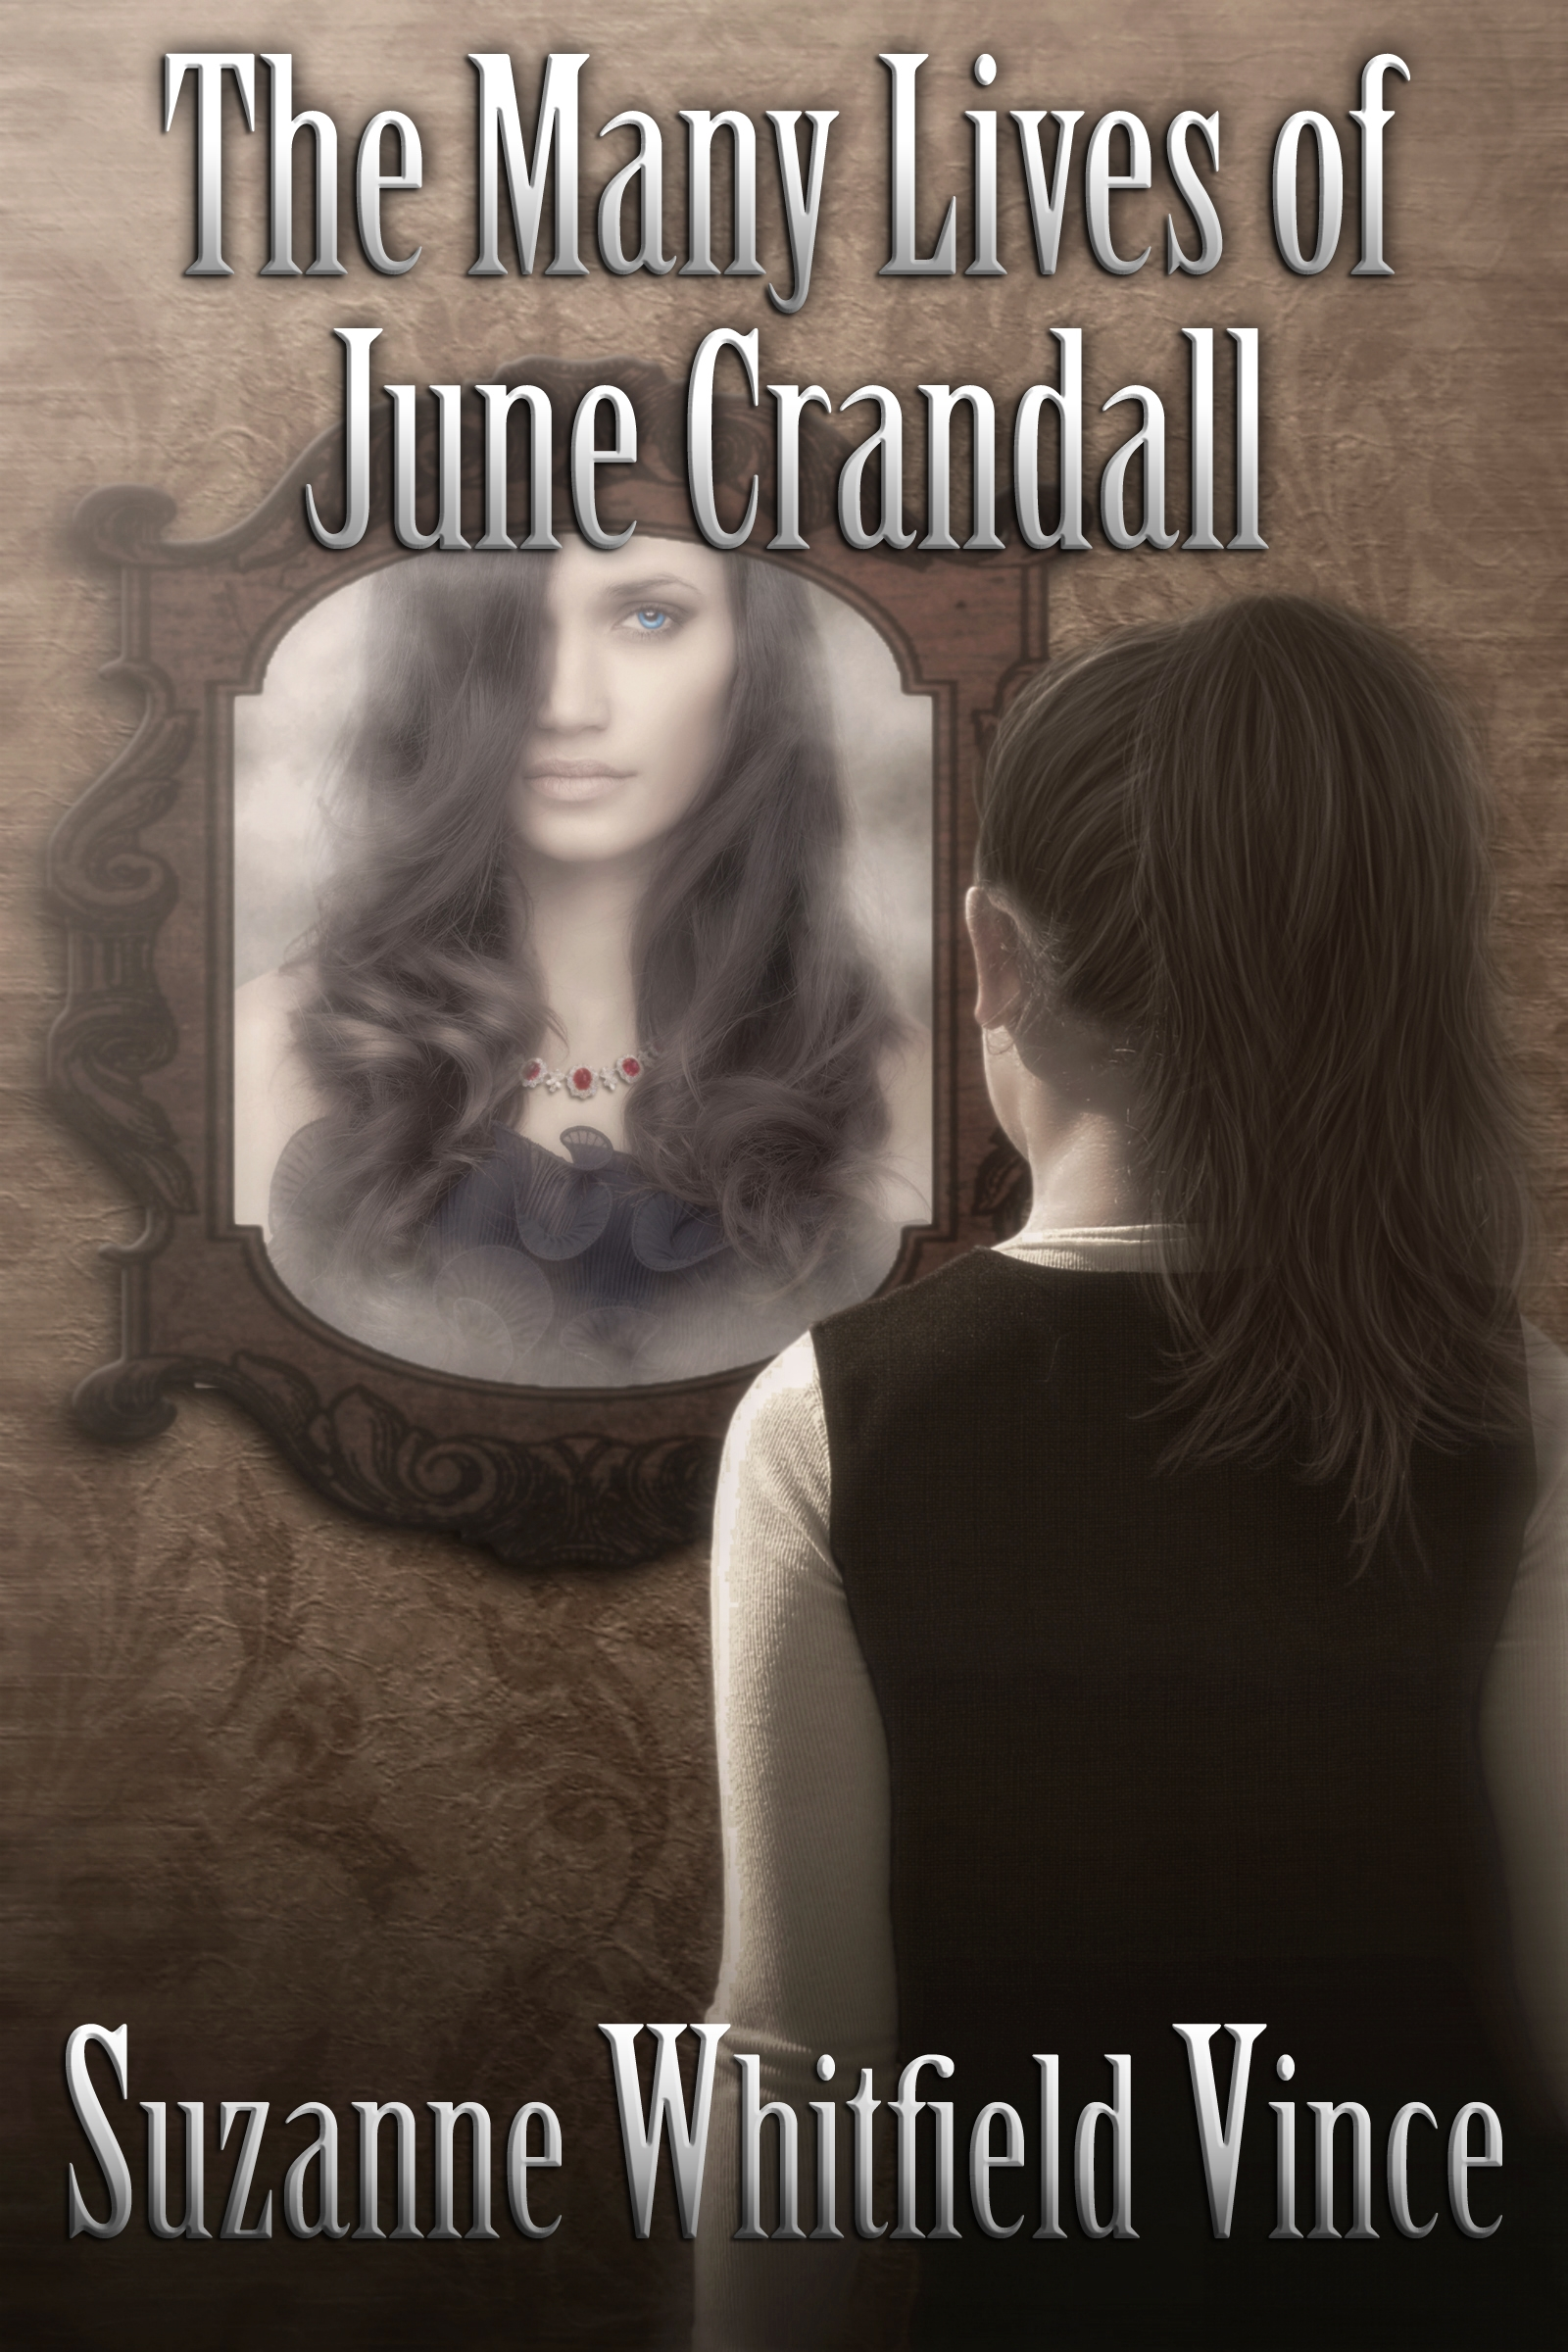 The Many Lives of June Crandall